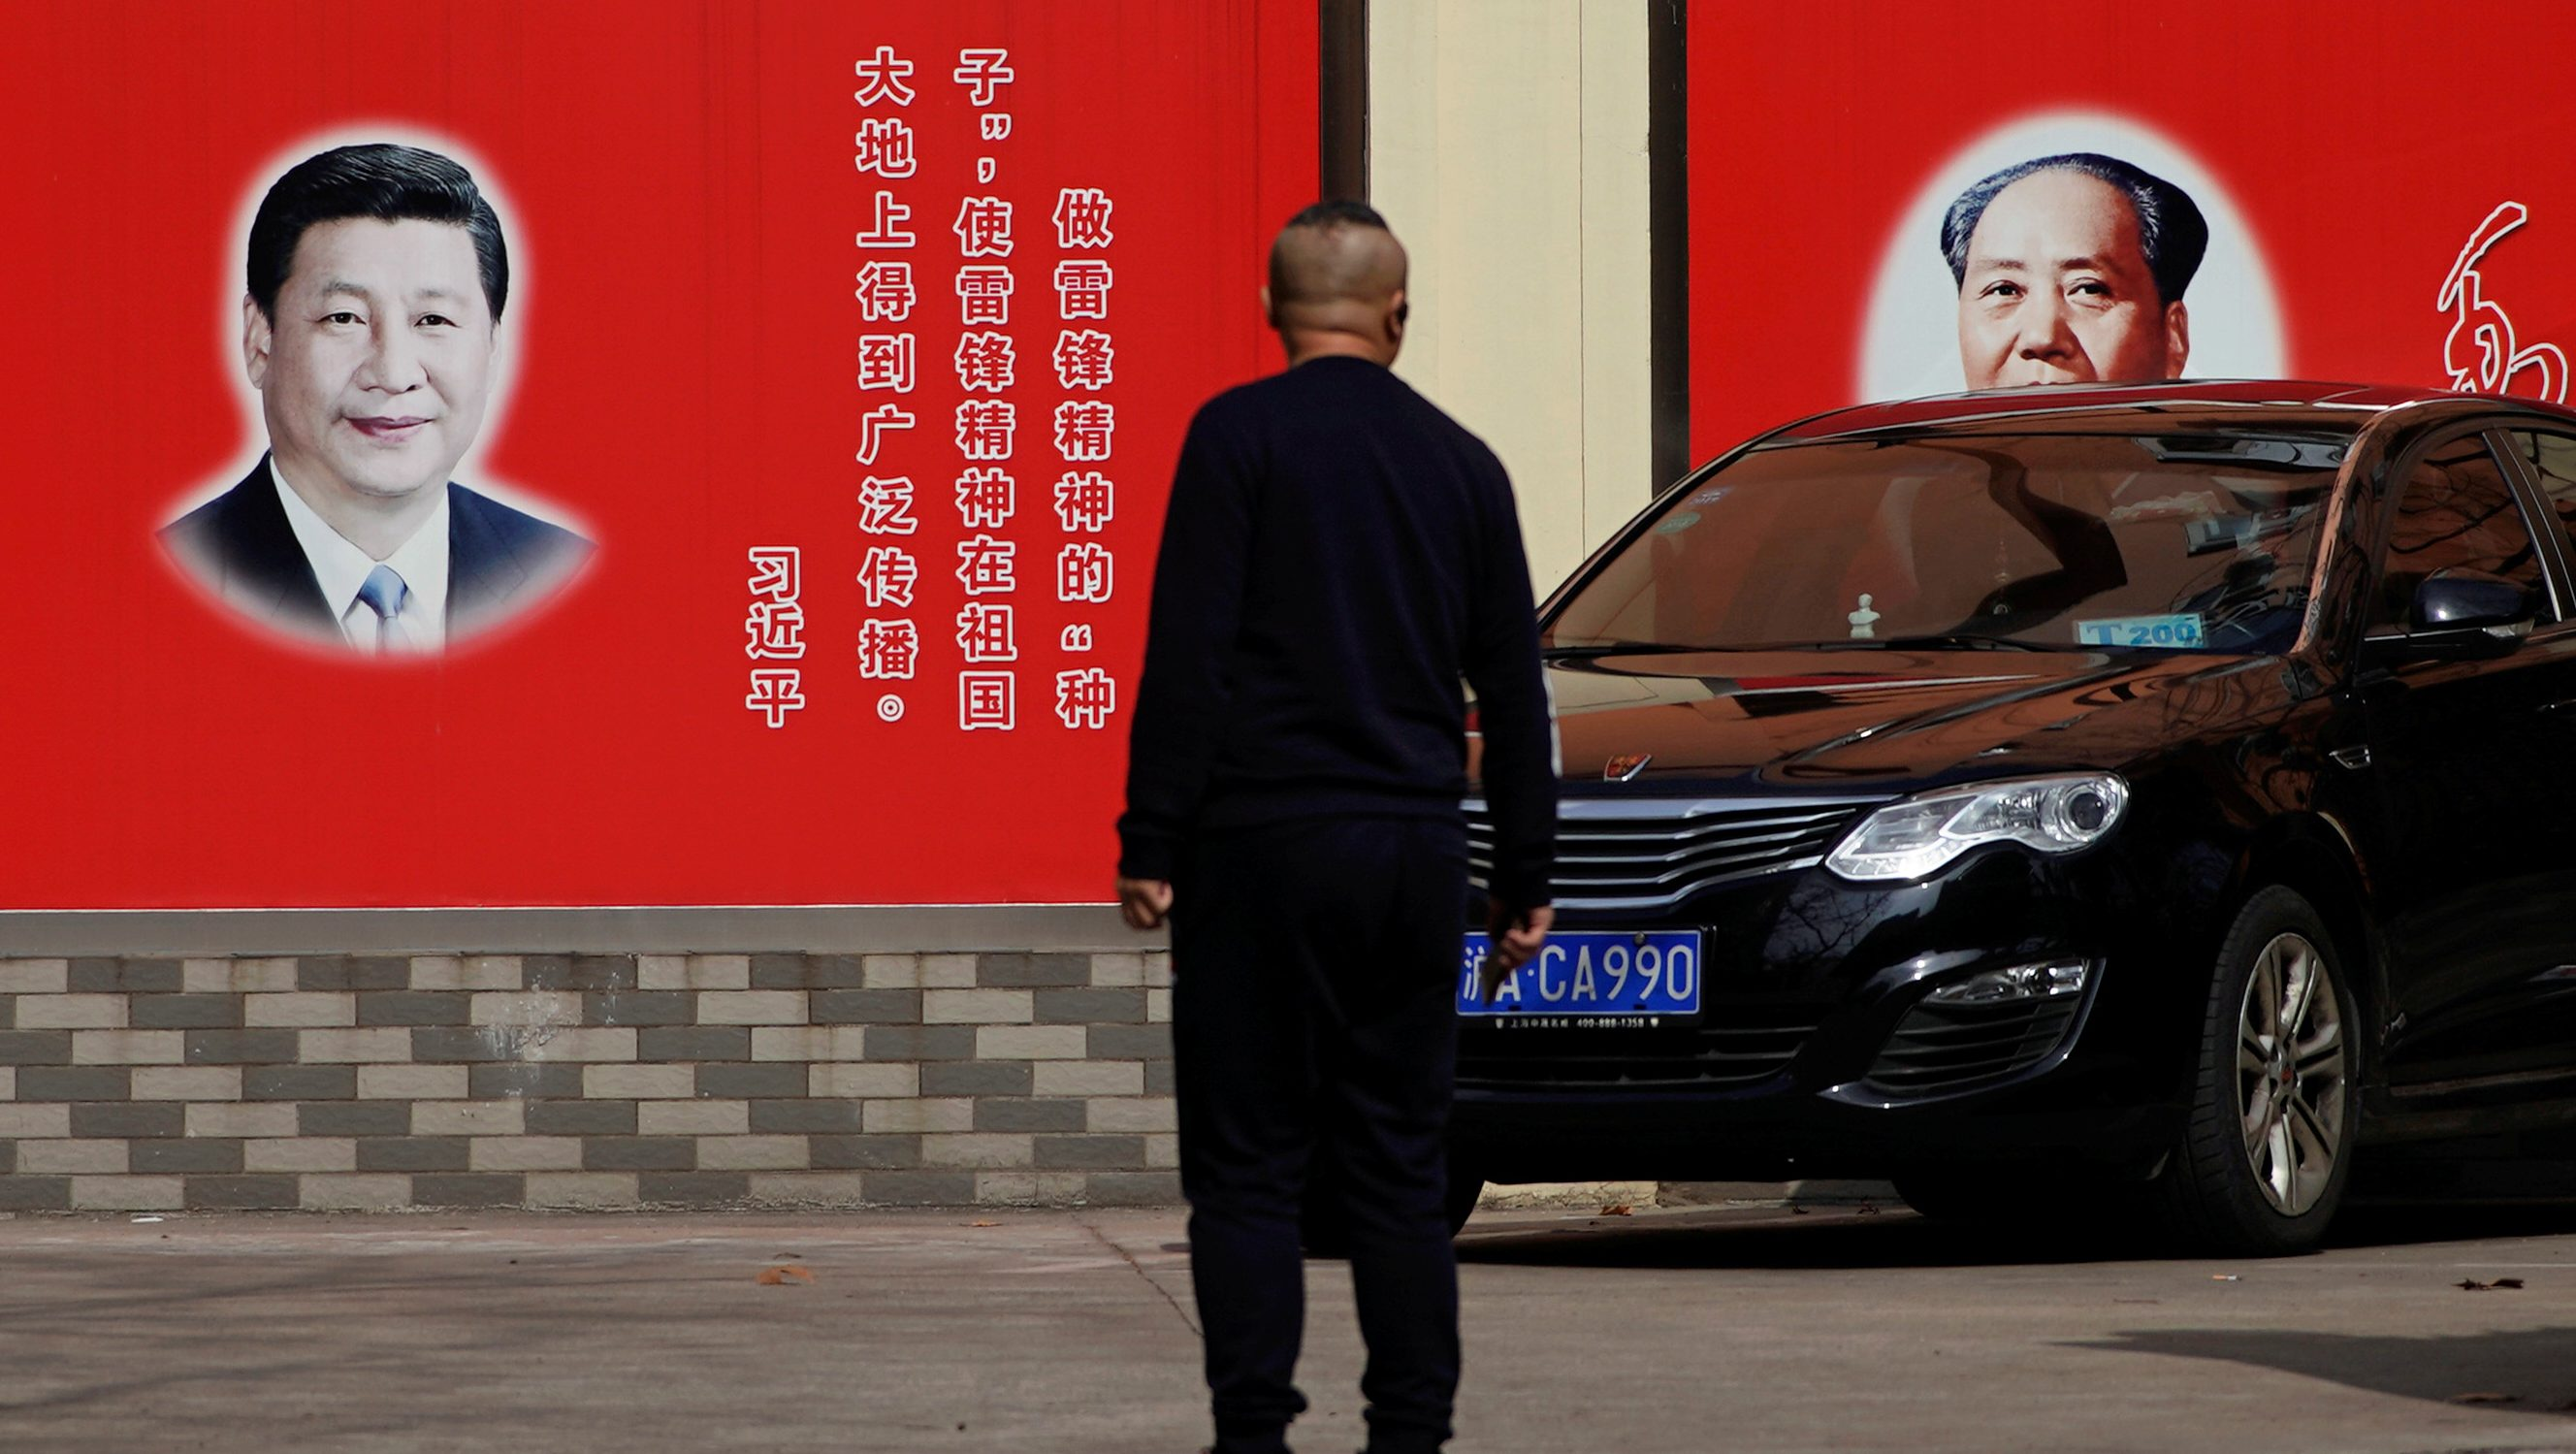 Pictures of Chinese President Xi Jinping and late Chinese Chairman Mao Zedong overlook a street in Shanghai, China February 26, 2018.